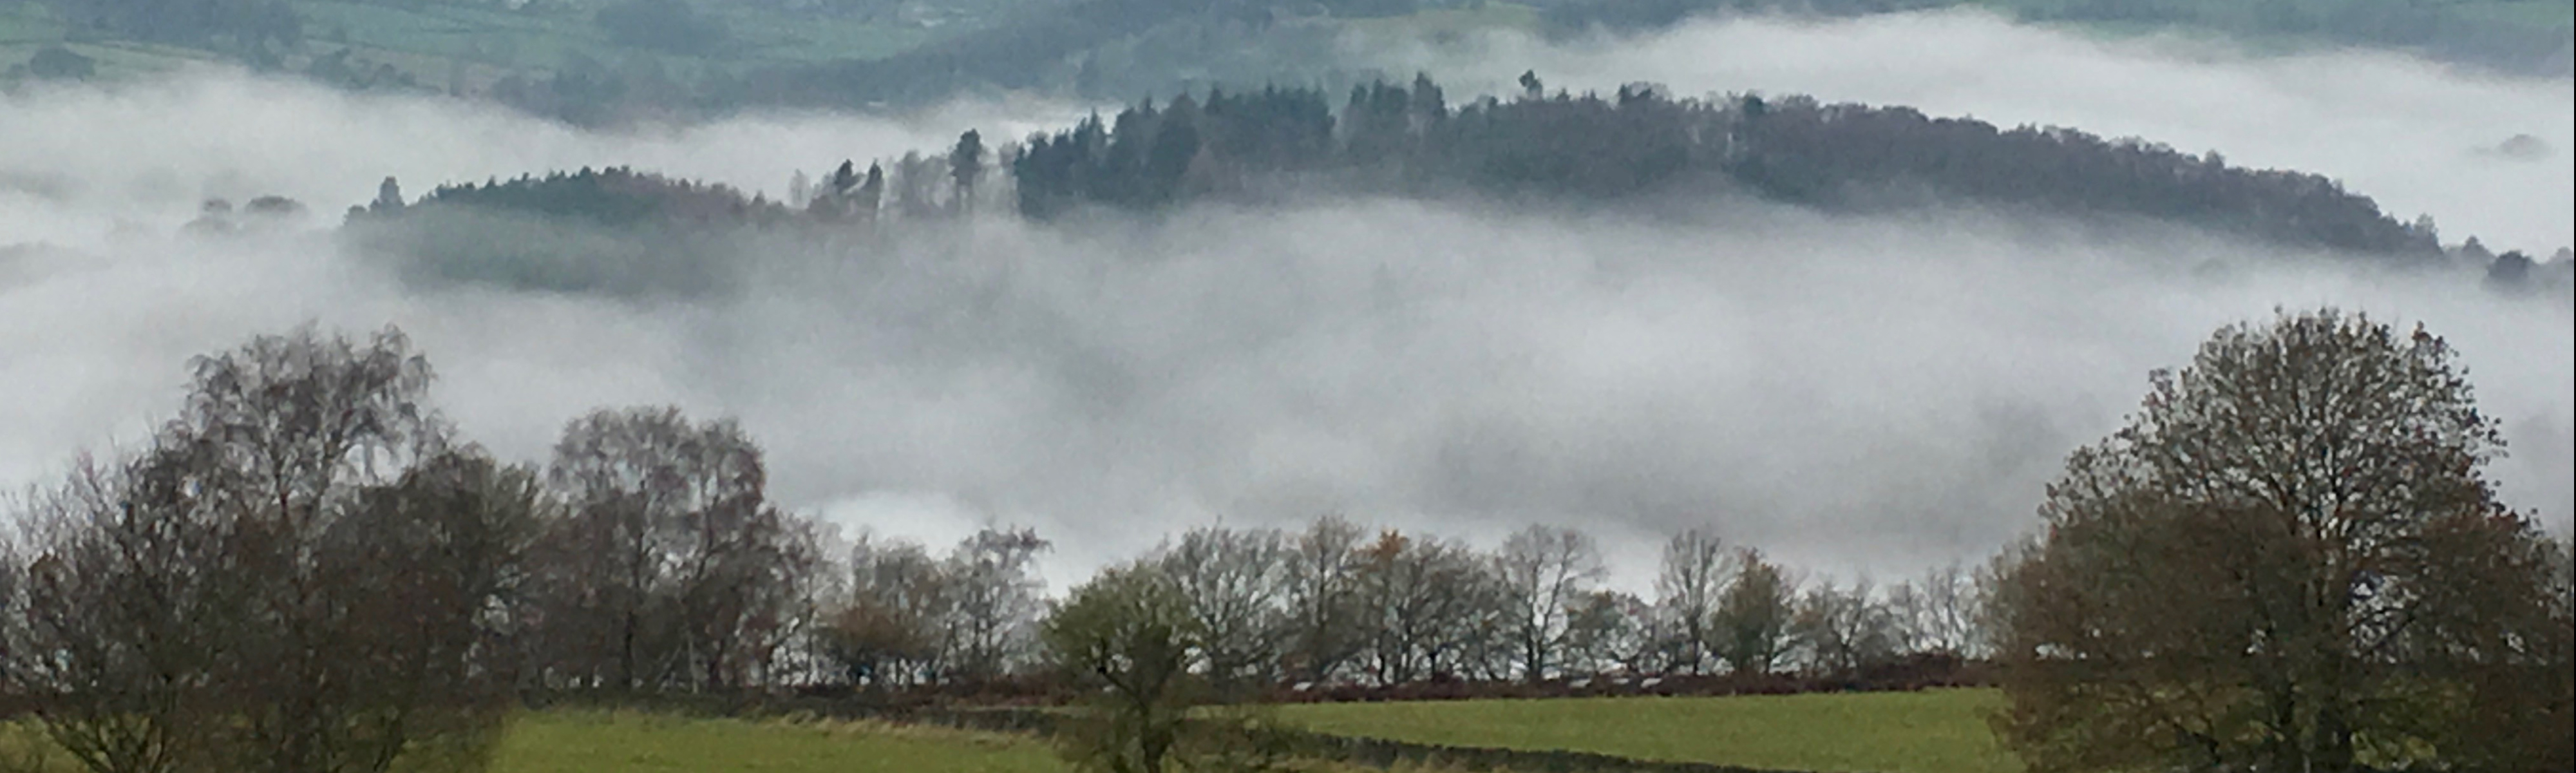 View of Misty Derwent Valley from Chadwick Nick